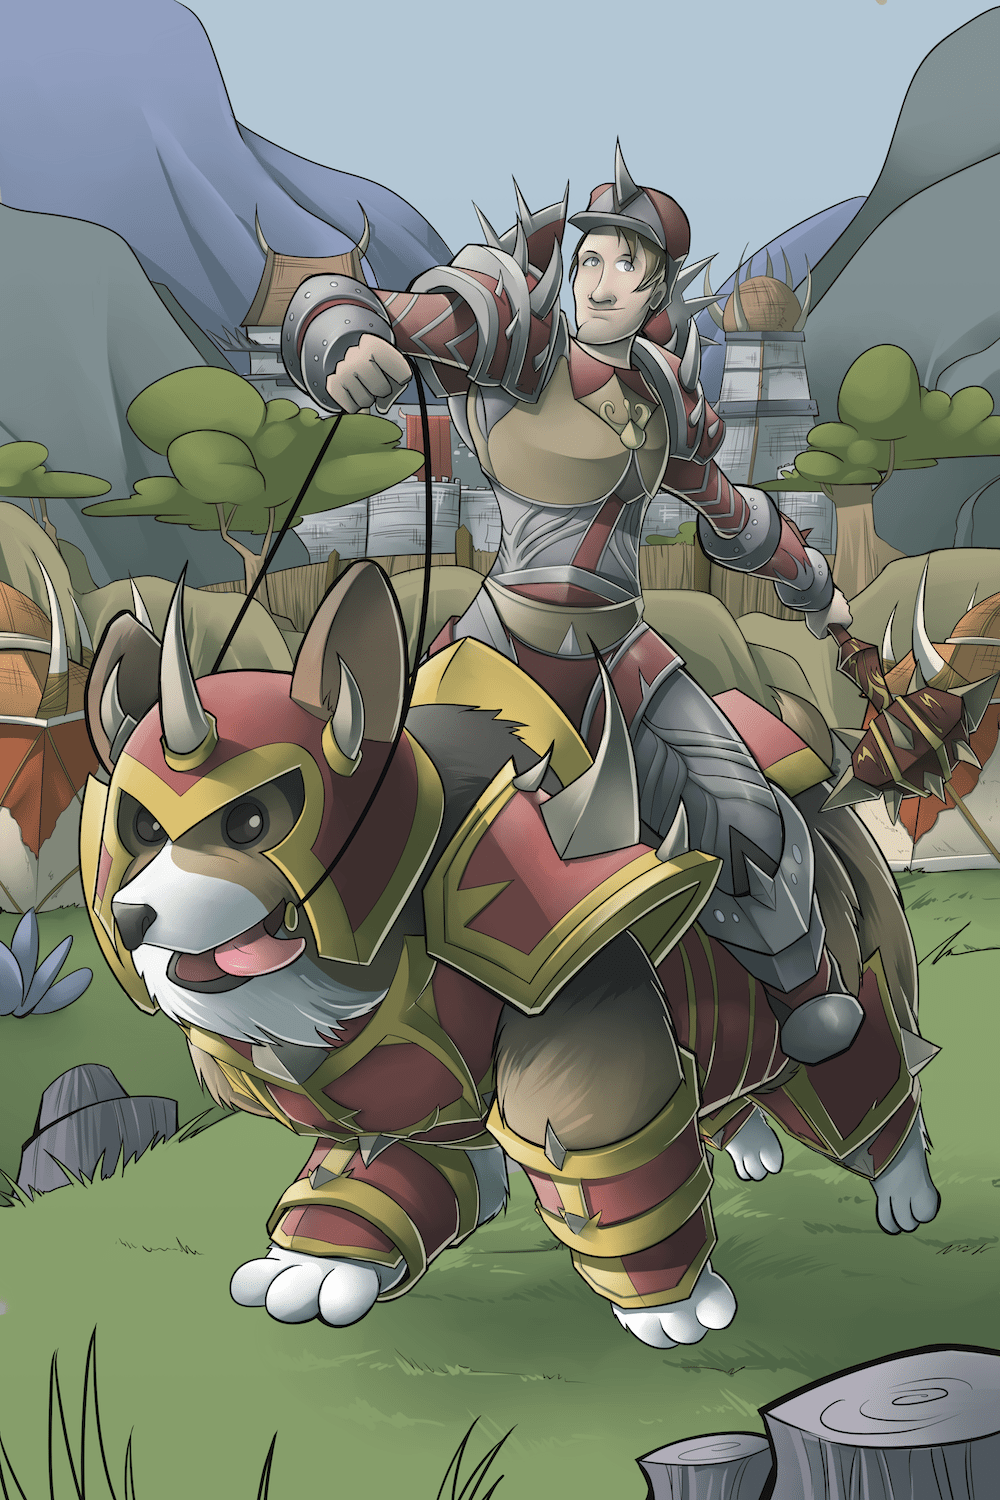 Illustration of a Man Riding a Corgi Morgikaiser by Silvadoray via ArtCorgi